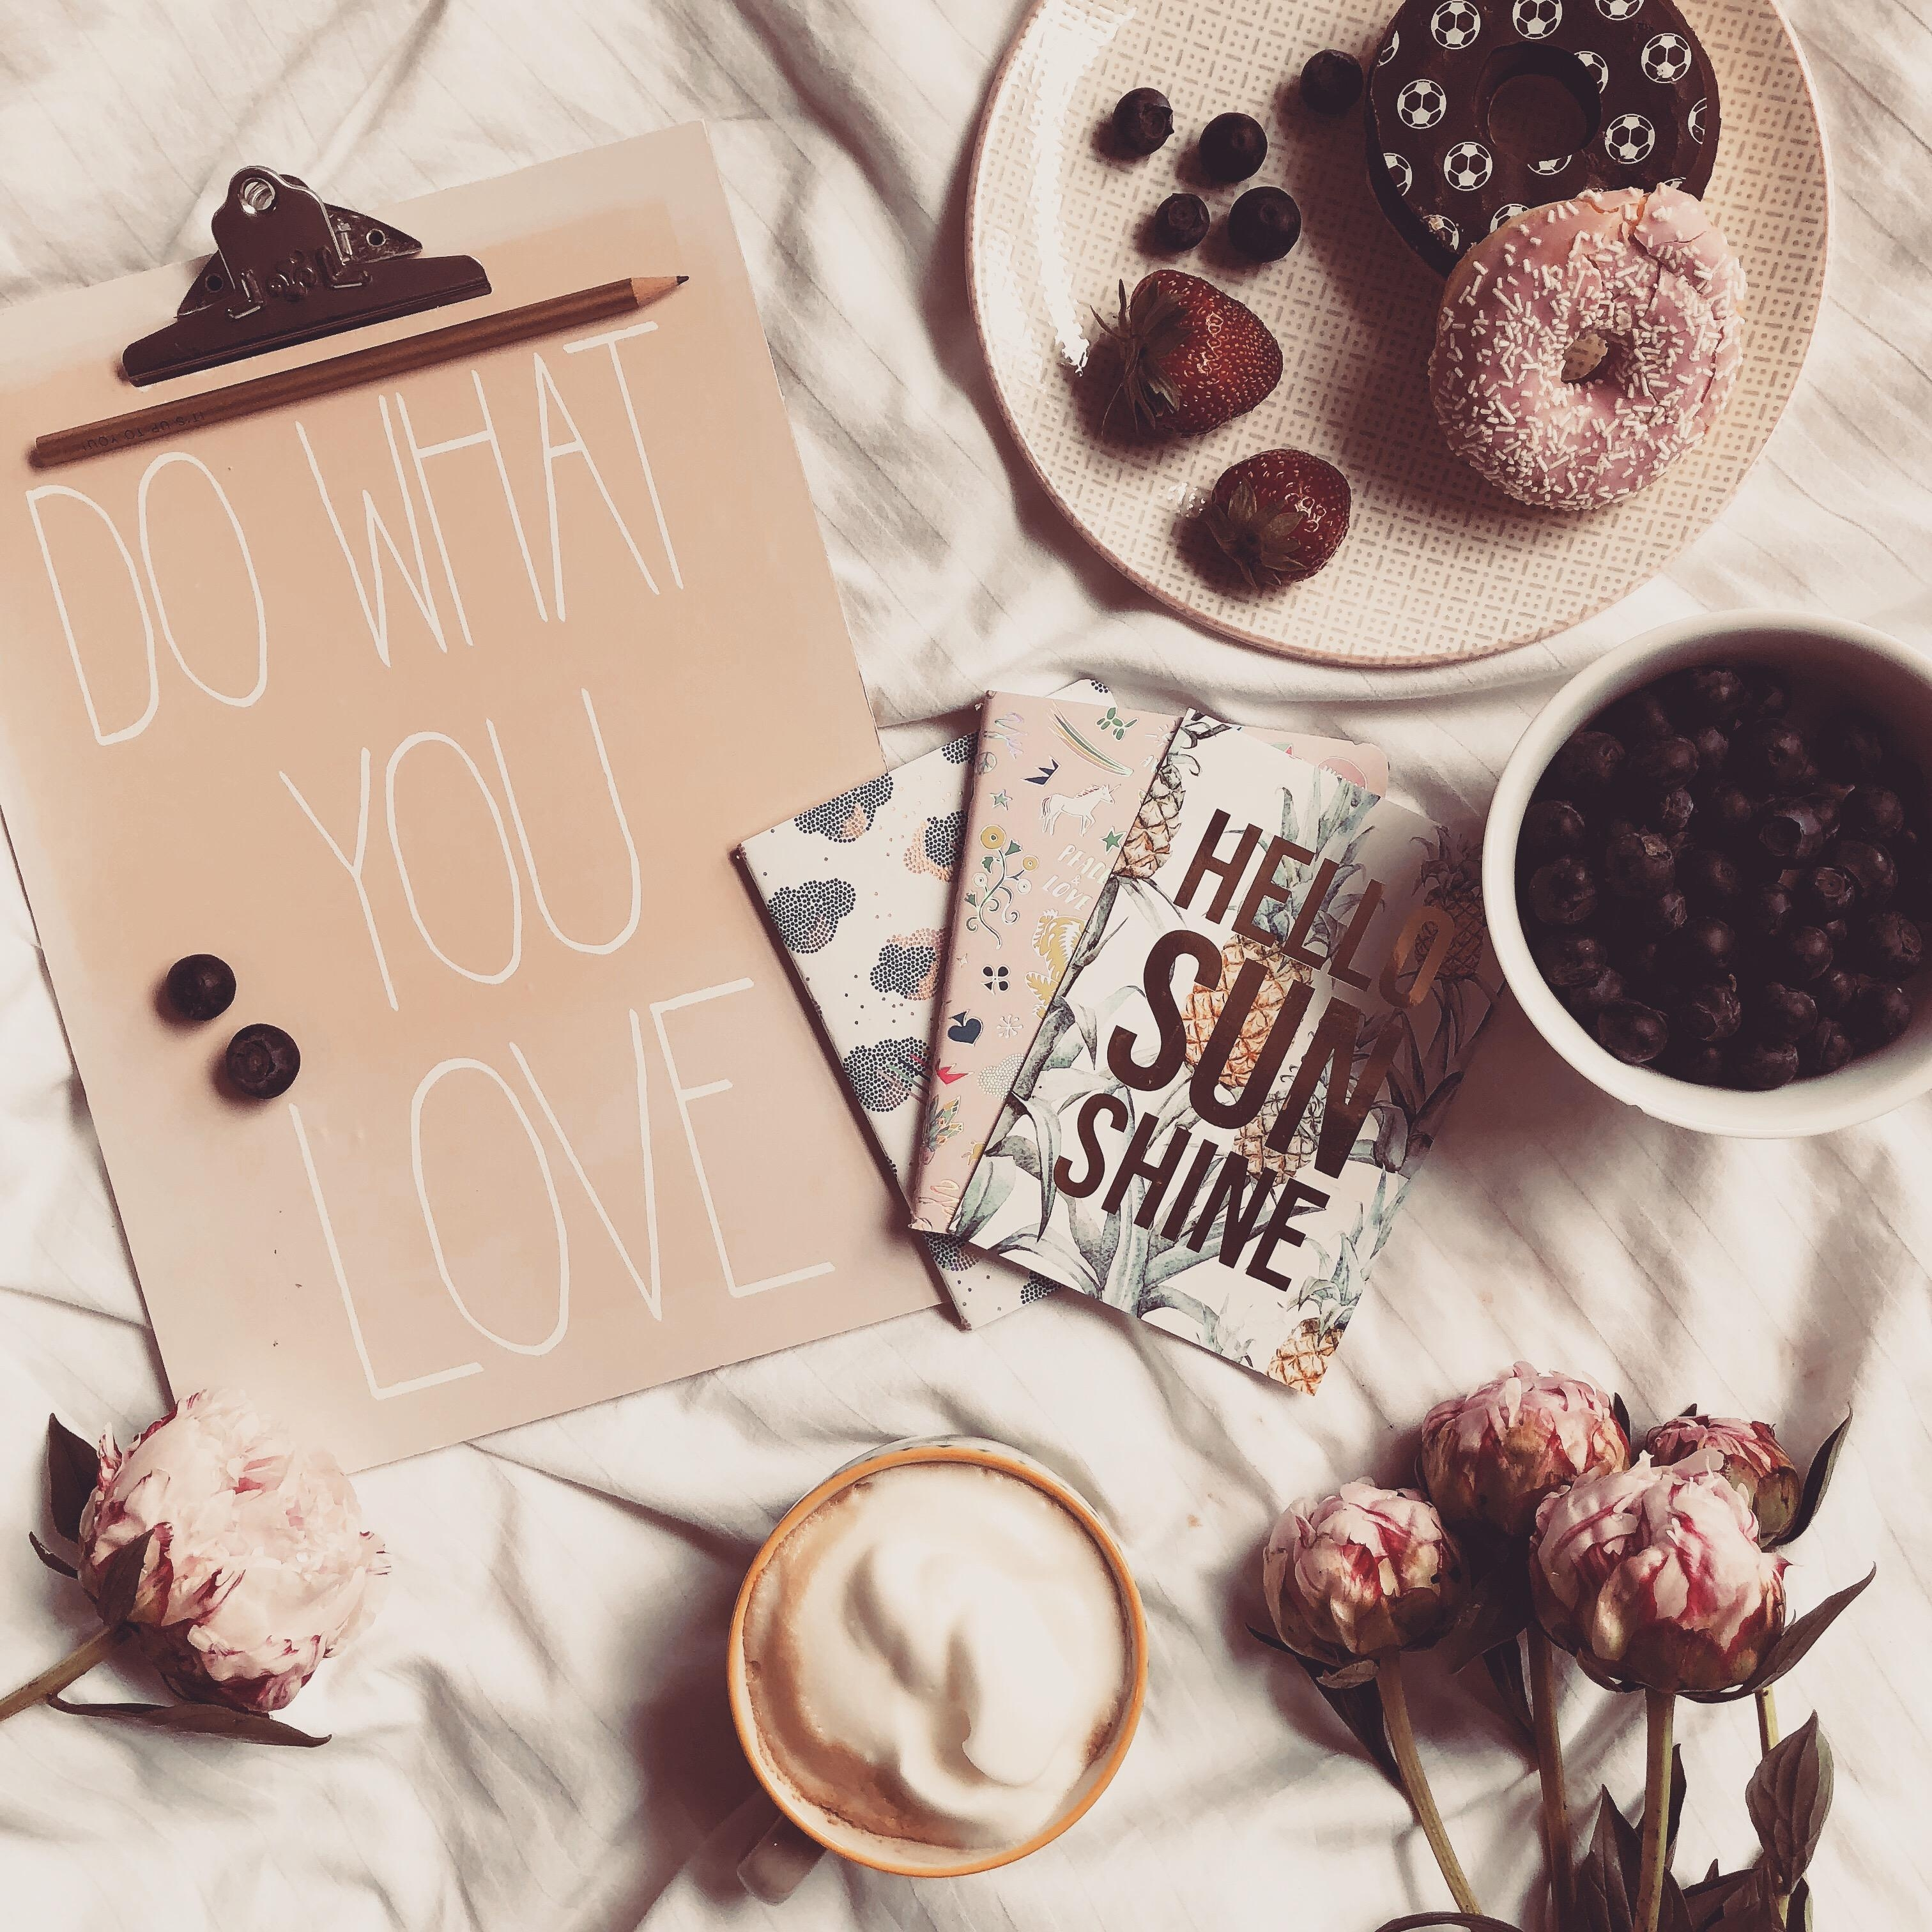 #flatlay zur wm #dowhatyoulove #onmybed #homedecor #coffeelover #details #petitjoys #couchstyle